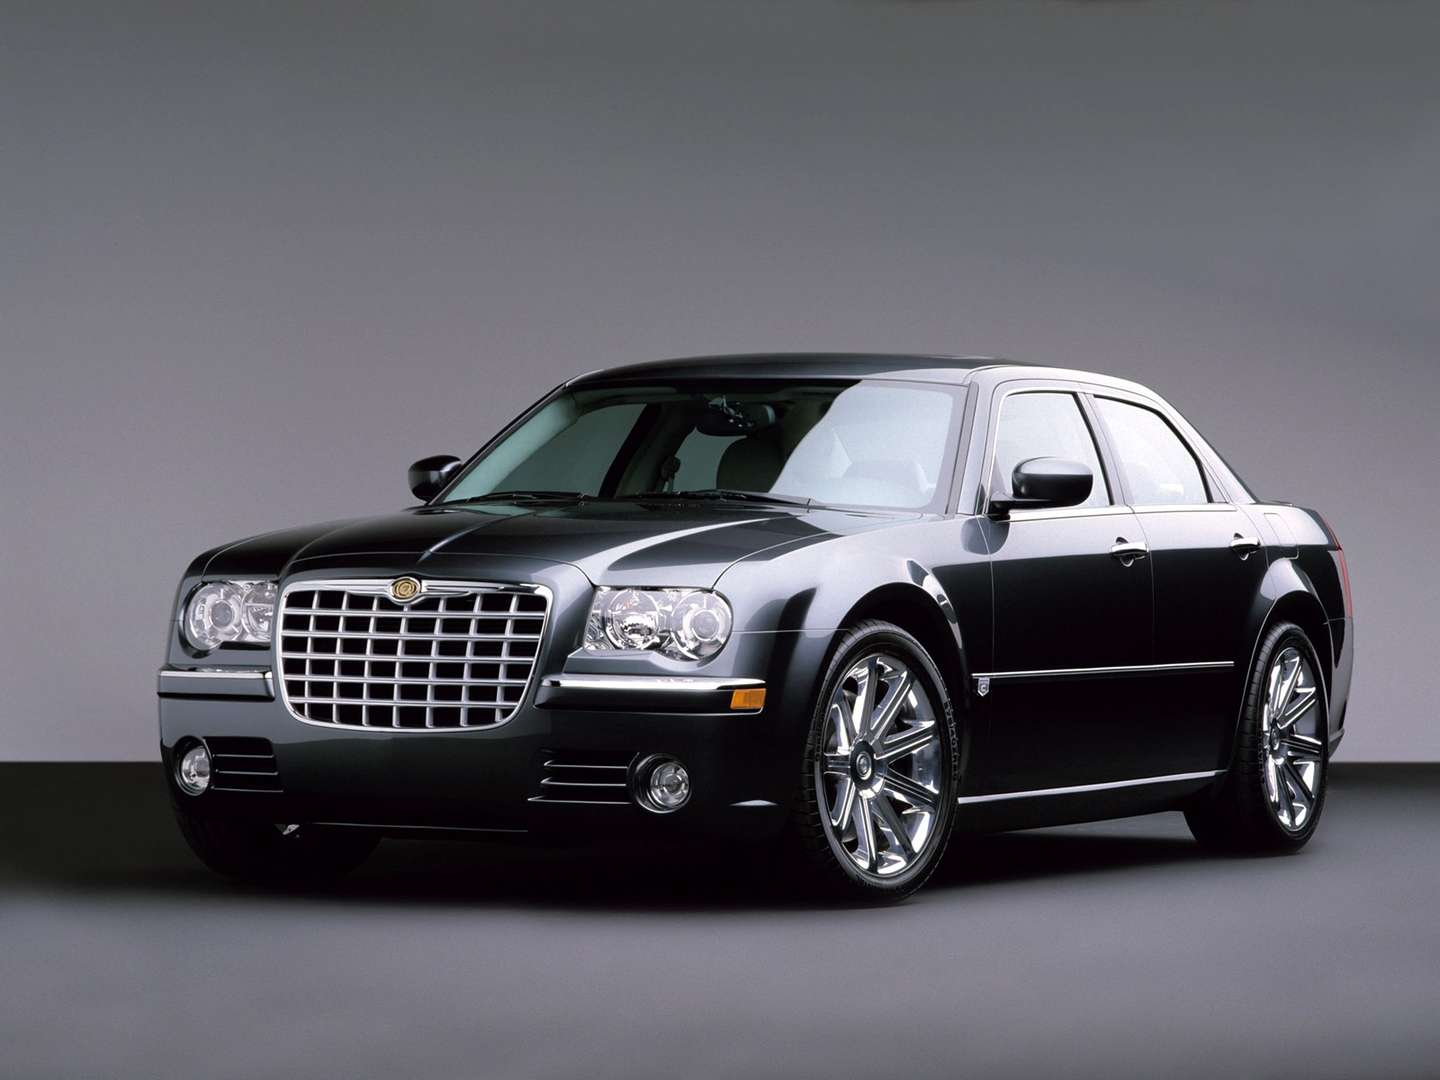 Chrysler 300 #7521200